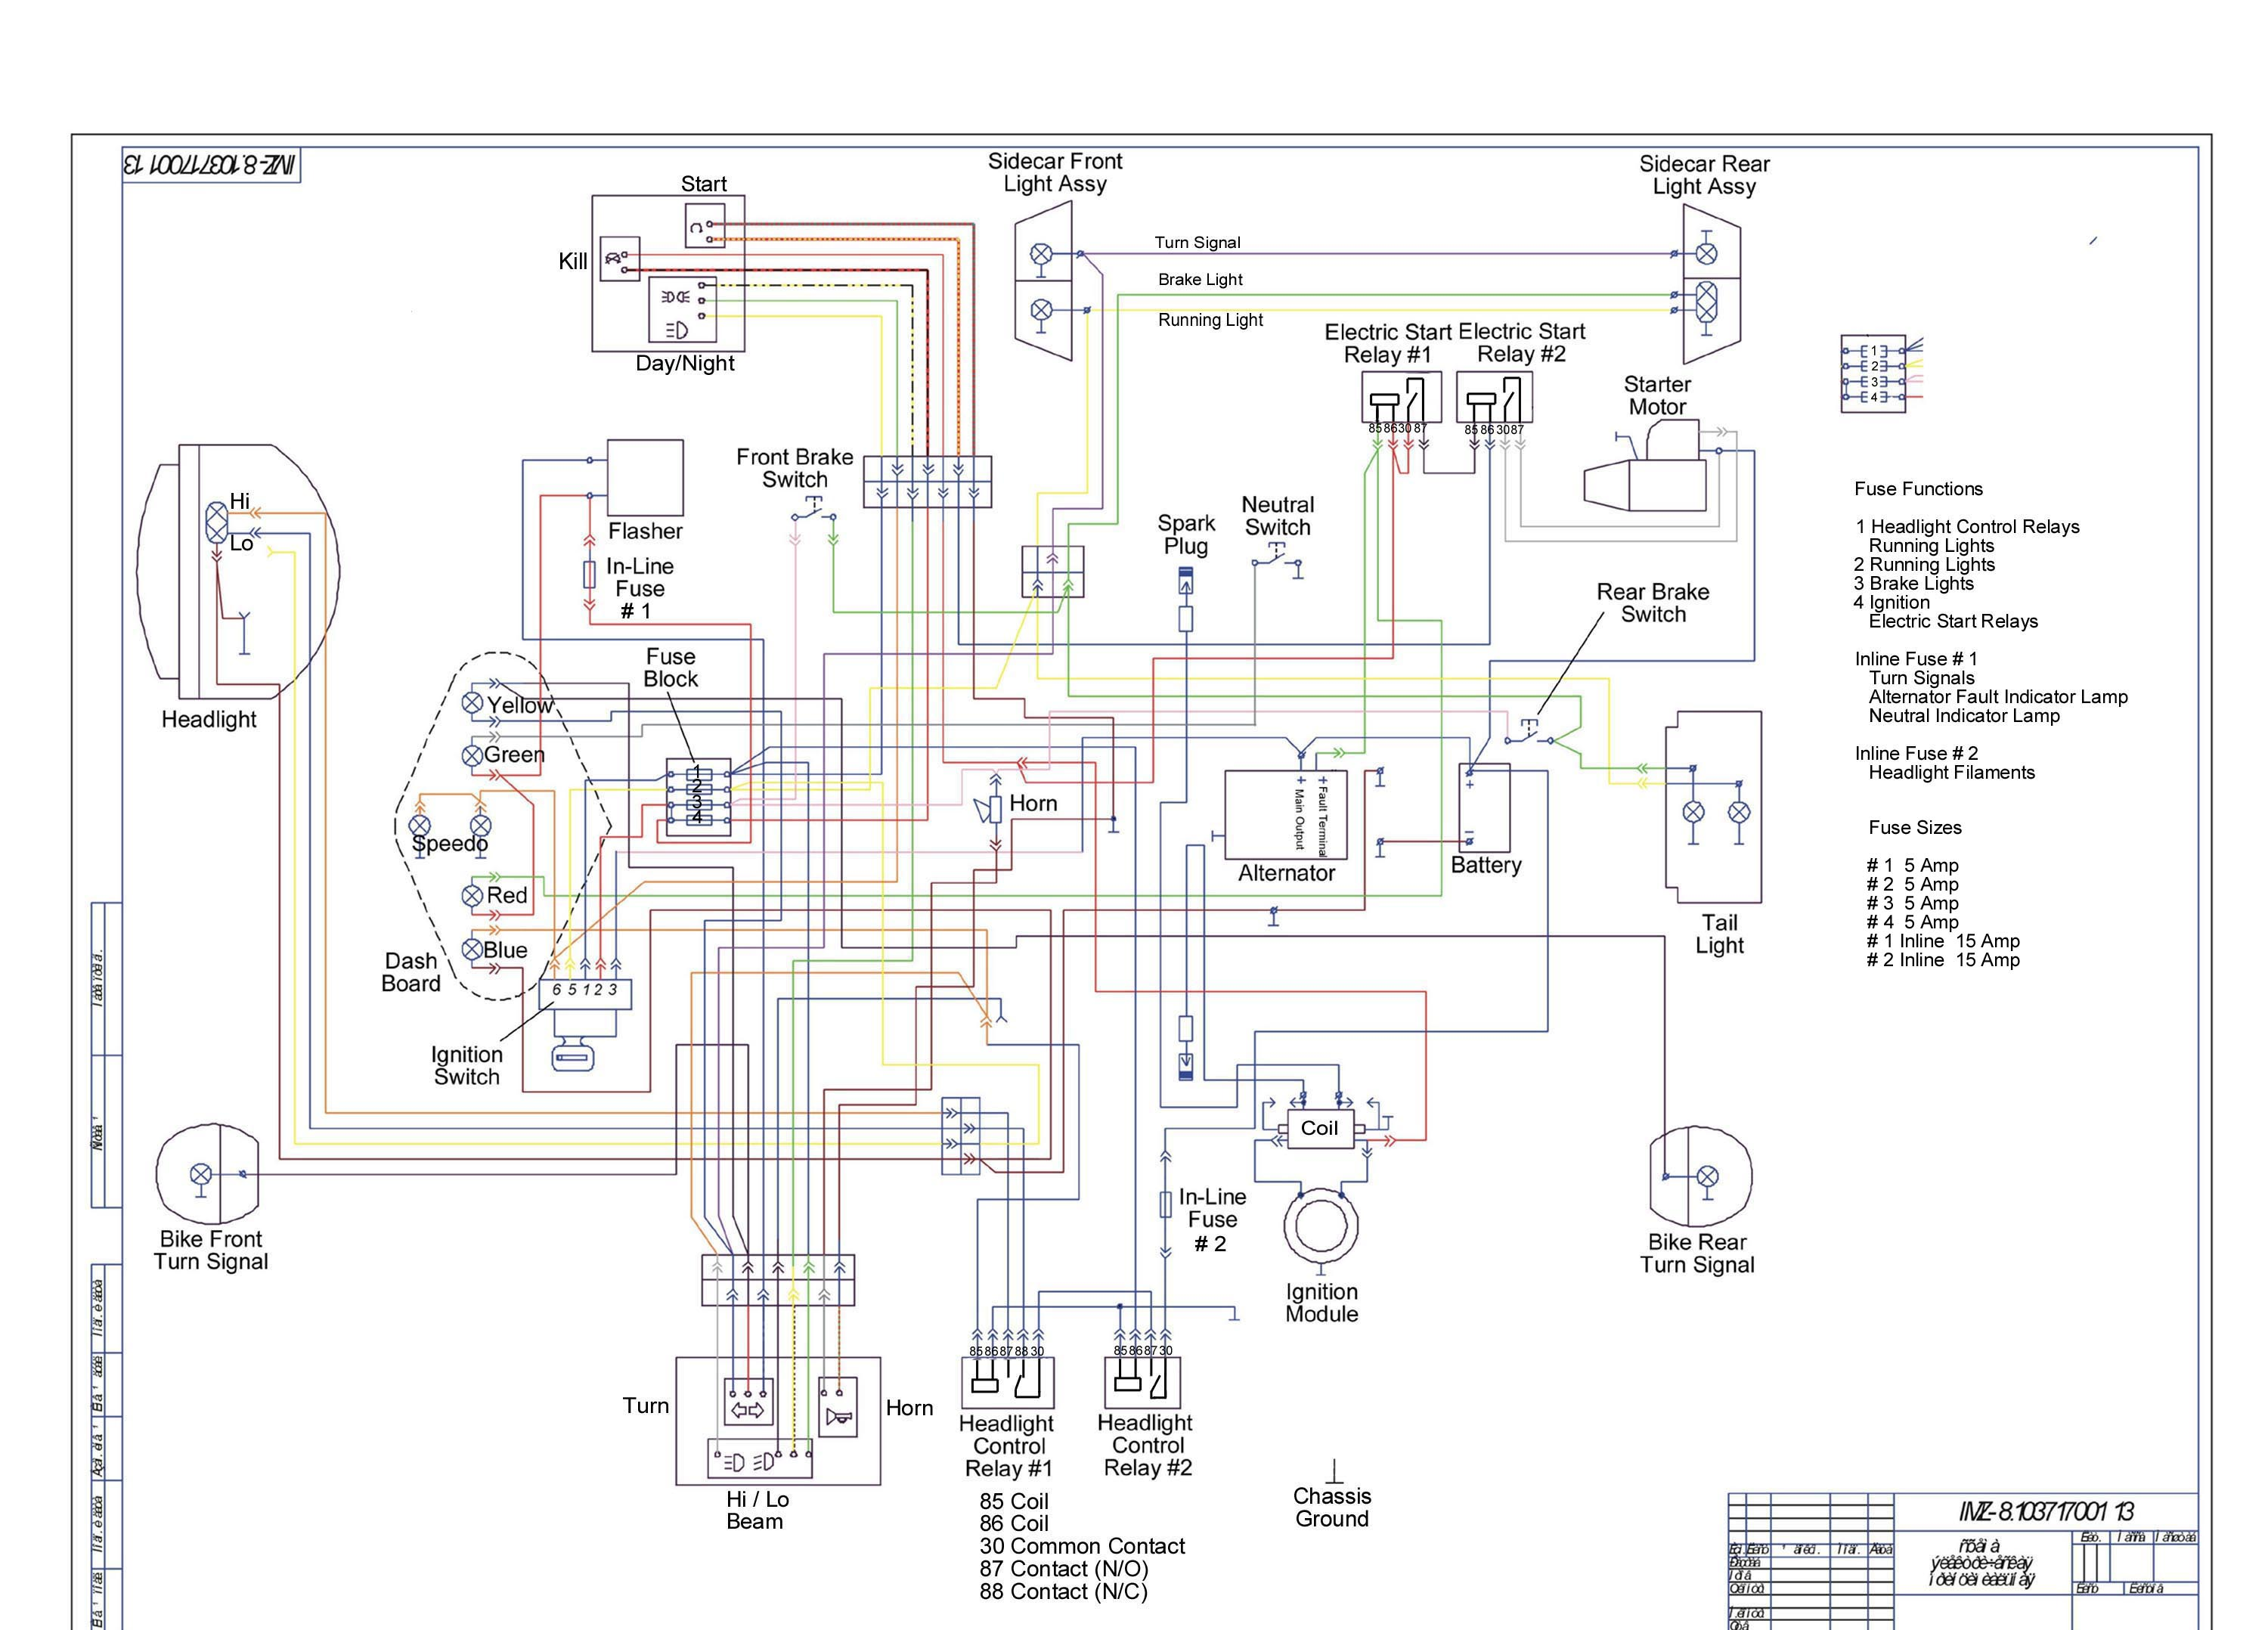 Cummins isf28 cm2220 e wiring fender jaguar wiring diagram 3406e jake brake wiring diagram oliver 550 wiring diagram gas 75020wiring20schematic 3406e jake brake wiring diagramhtml cummins isf28 cm2220 e wiring asfbconference2016 Image collections